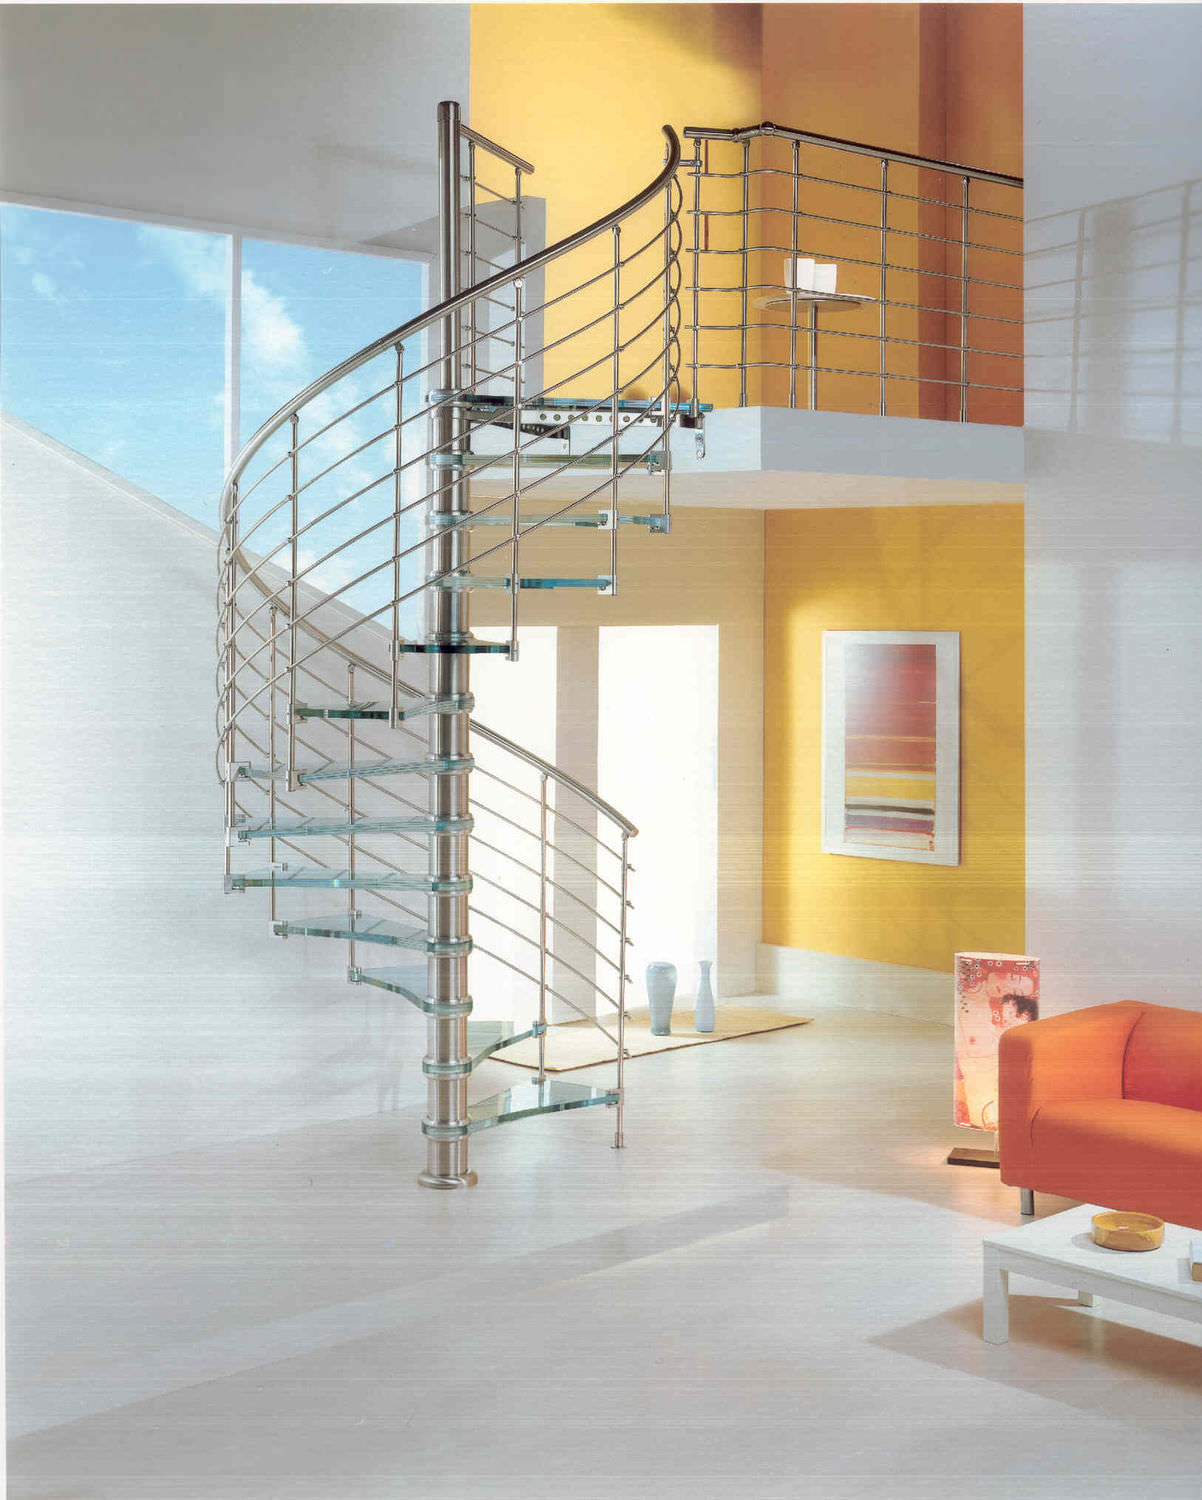 circular staircase   metal frame   glass steps   without risers -  EXCELLENCE   ICE BLUE KRISTALL 146fc7ebb548d